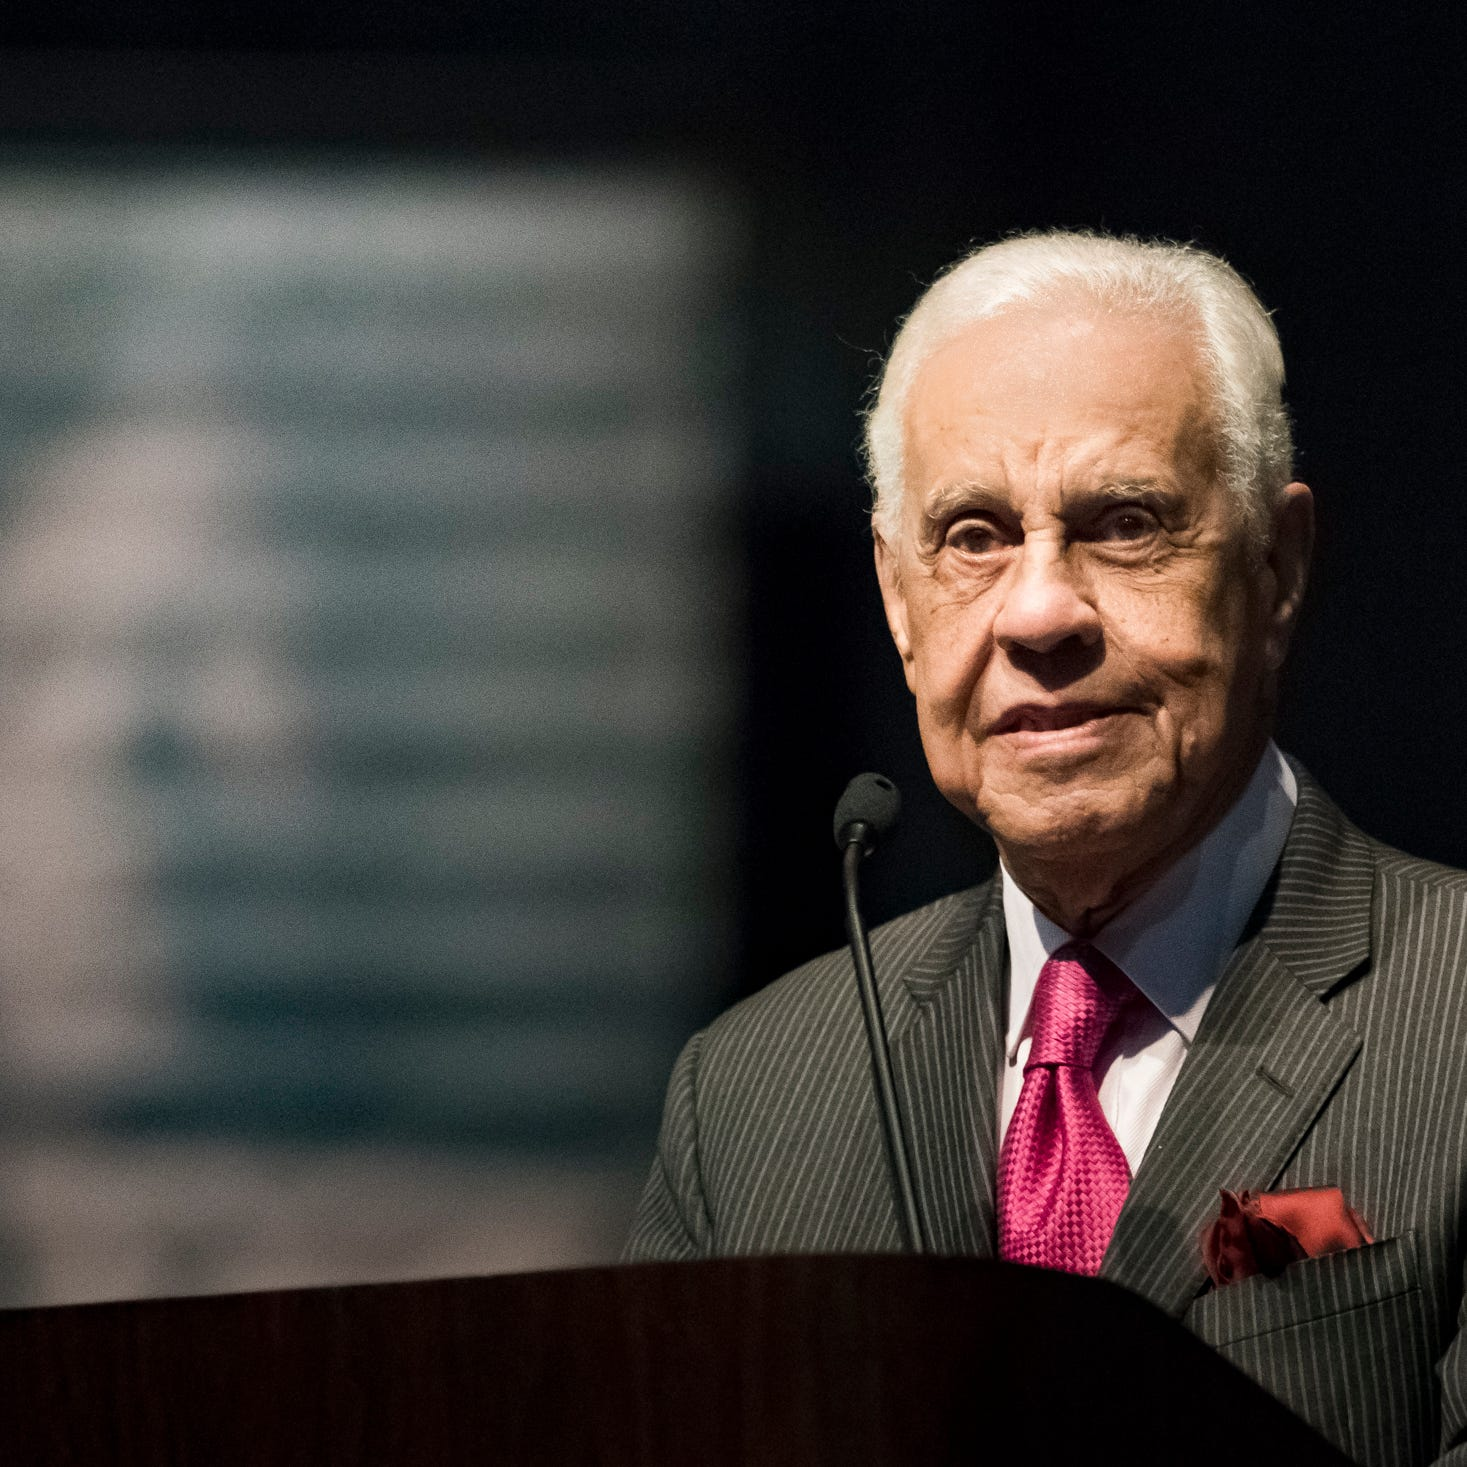 Former Virginia Gov. Douglas Wilder urges people to embrace youth, engage in civic life